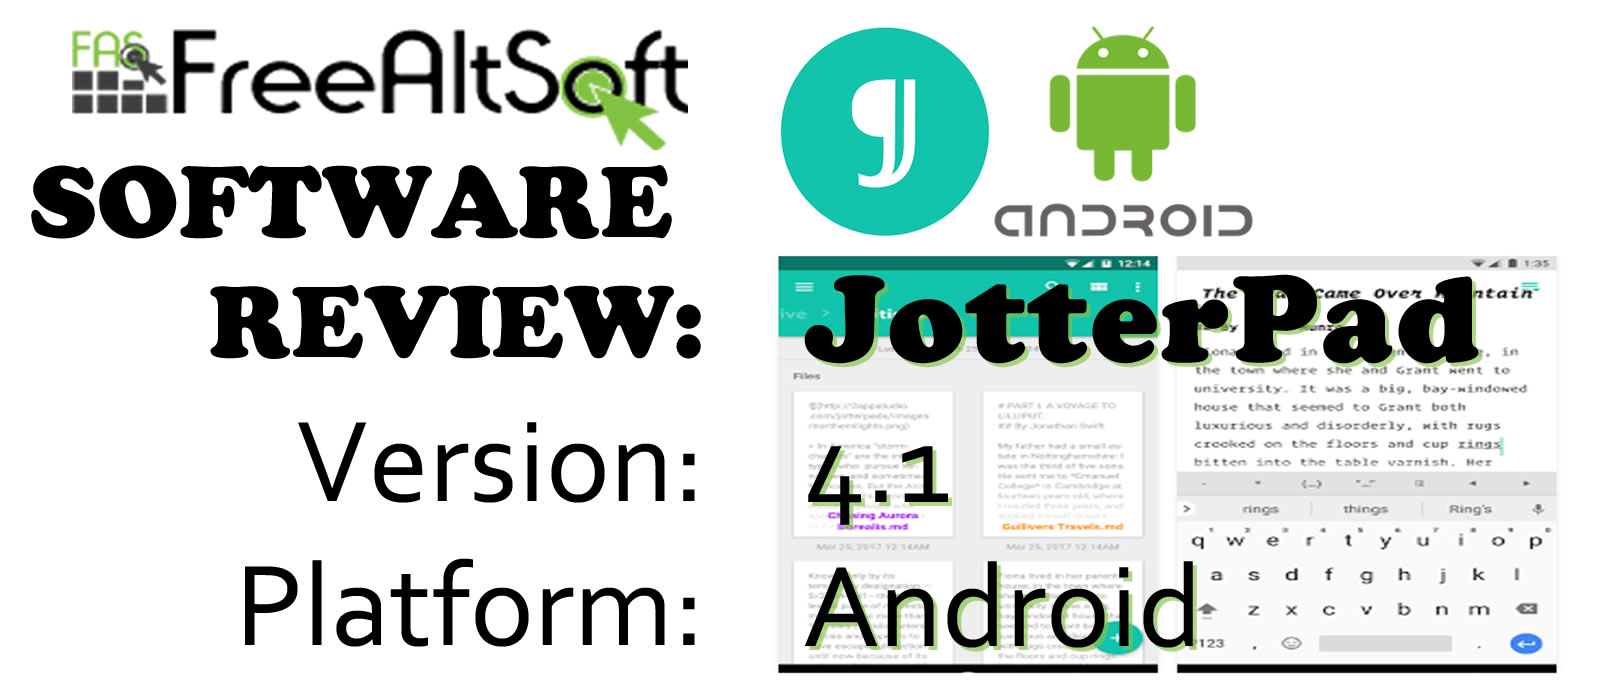 Review On JotterPad, A Free Writing Software For Android Devices